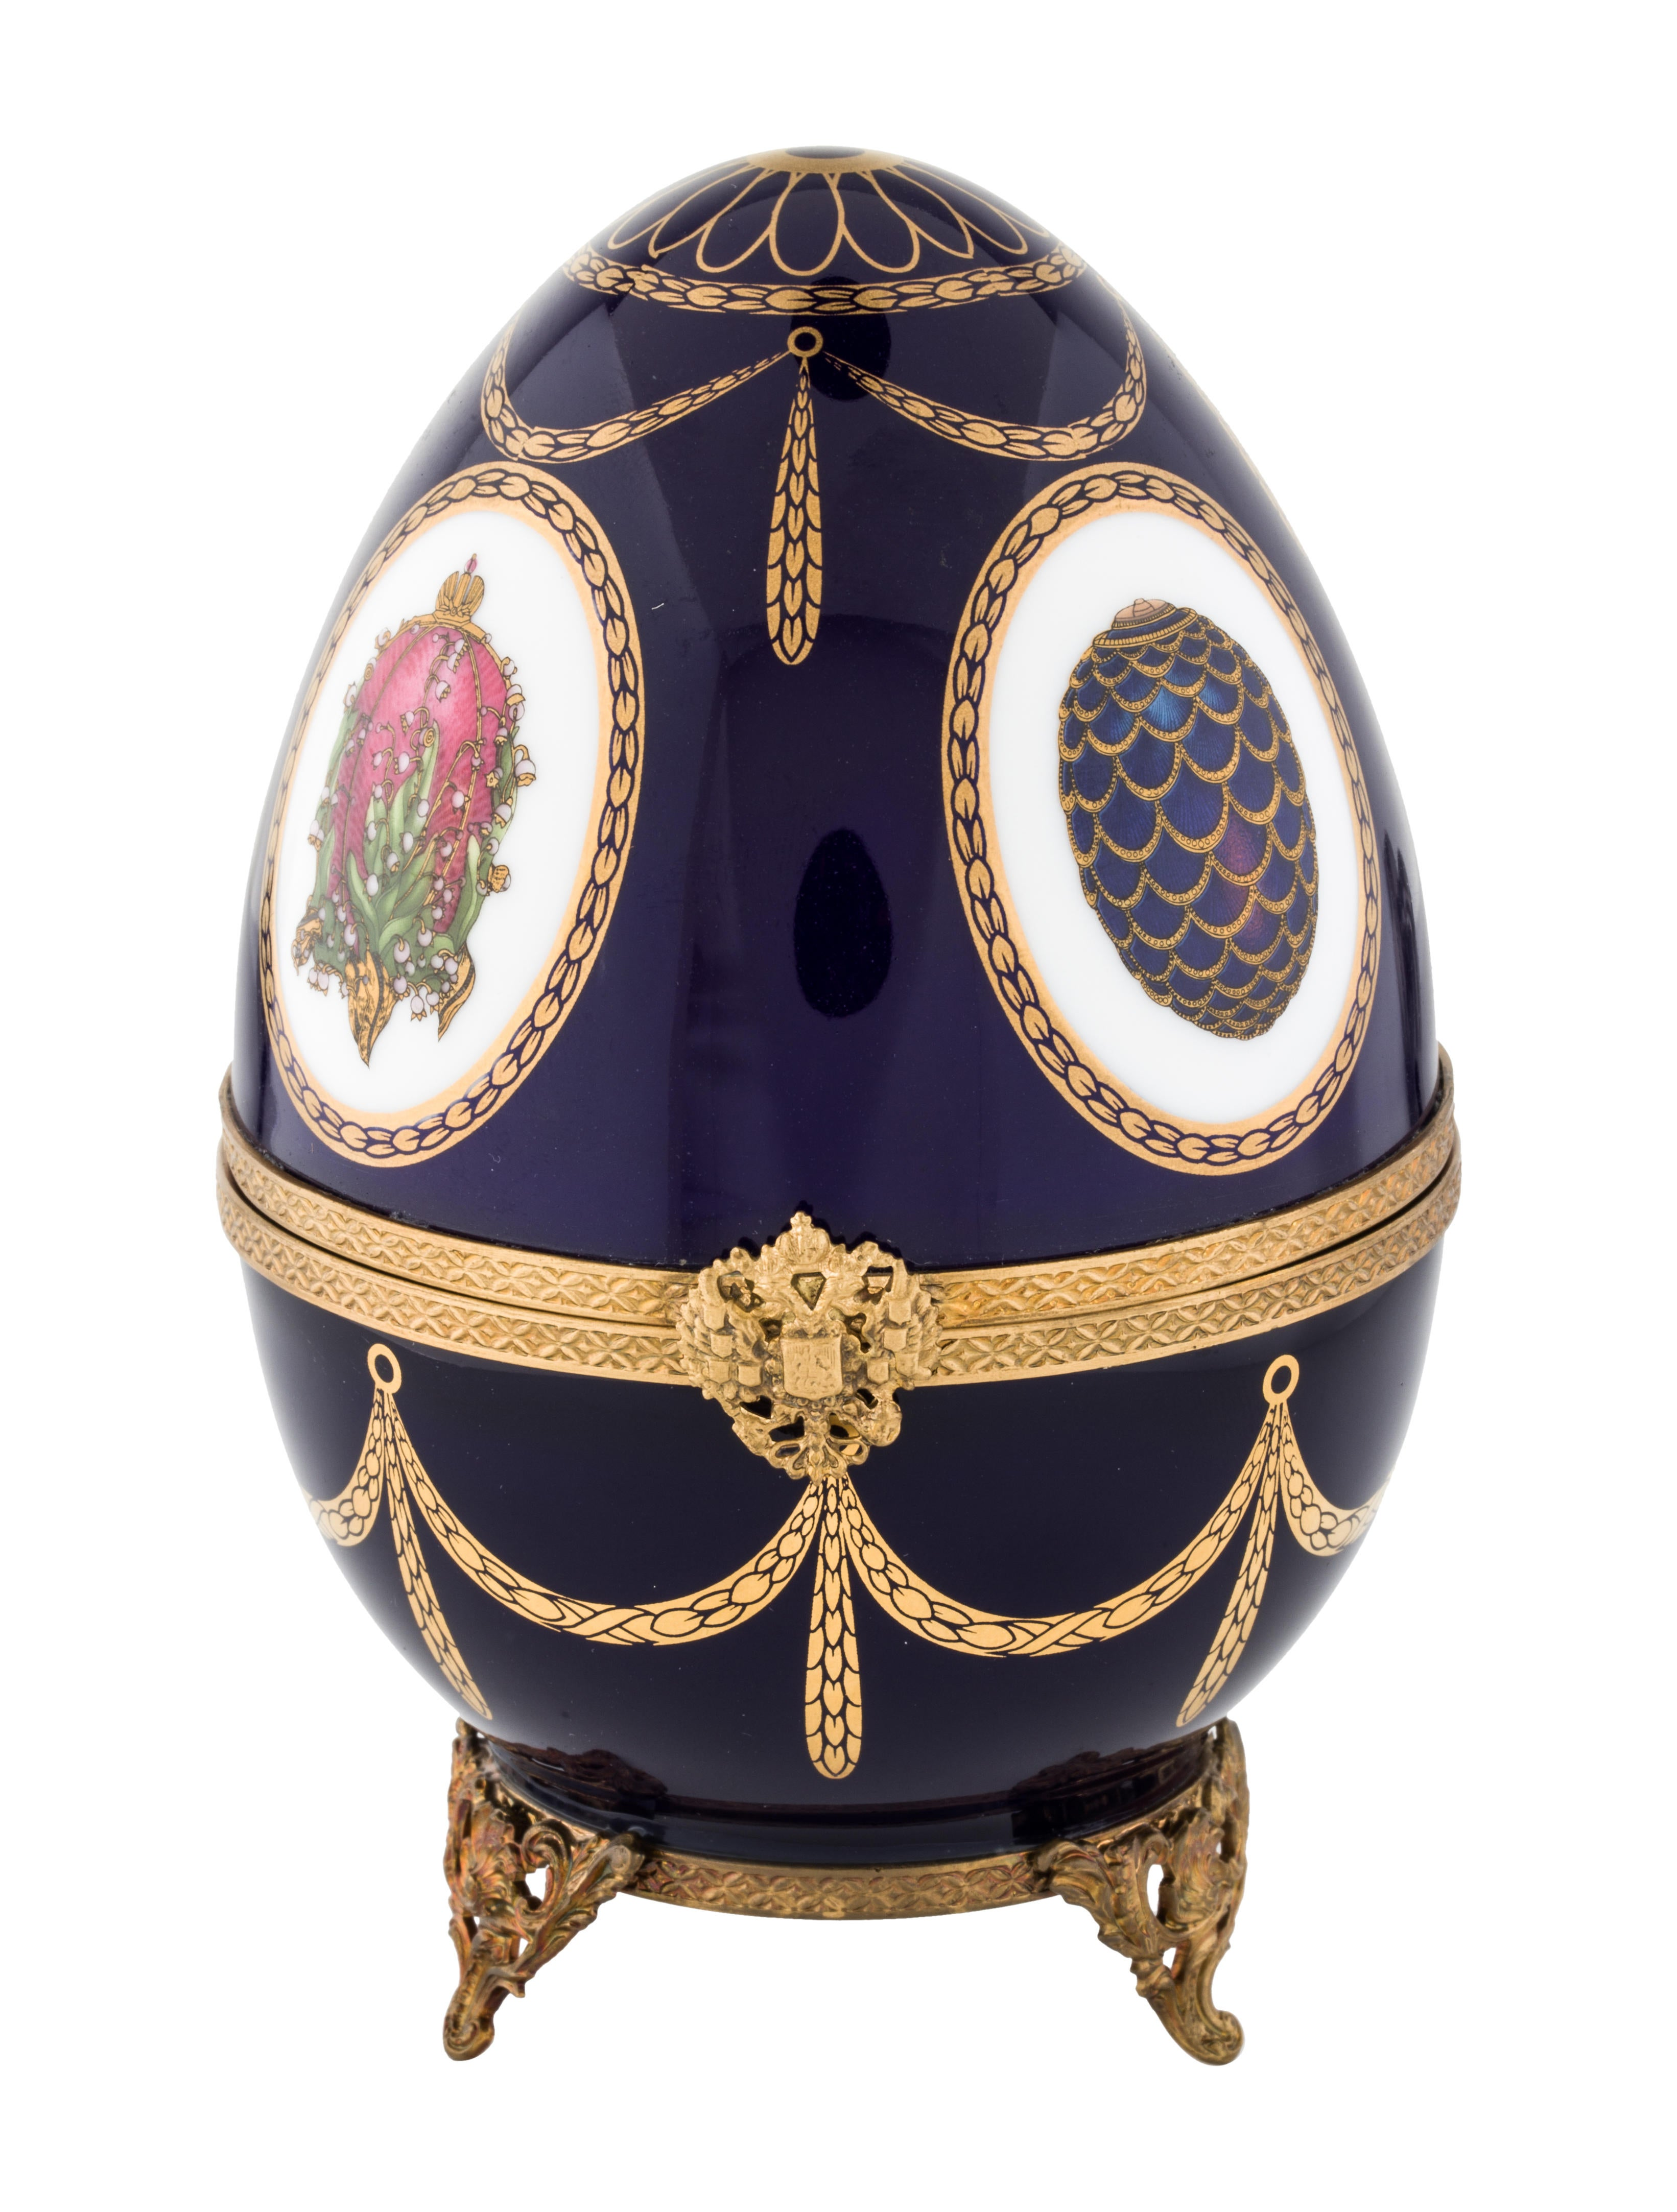 Faberg imperial swan egg music box decor and for Imperial home decor